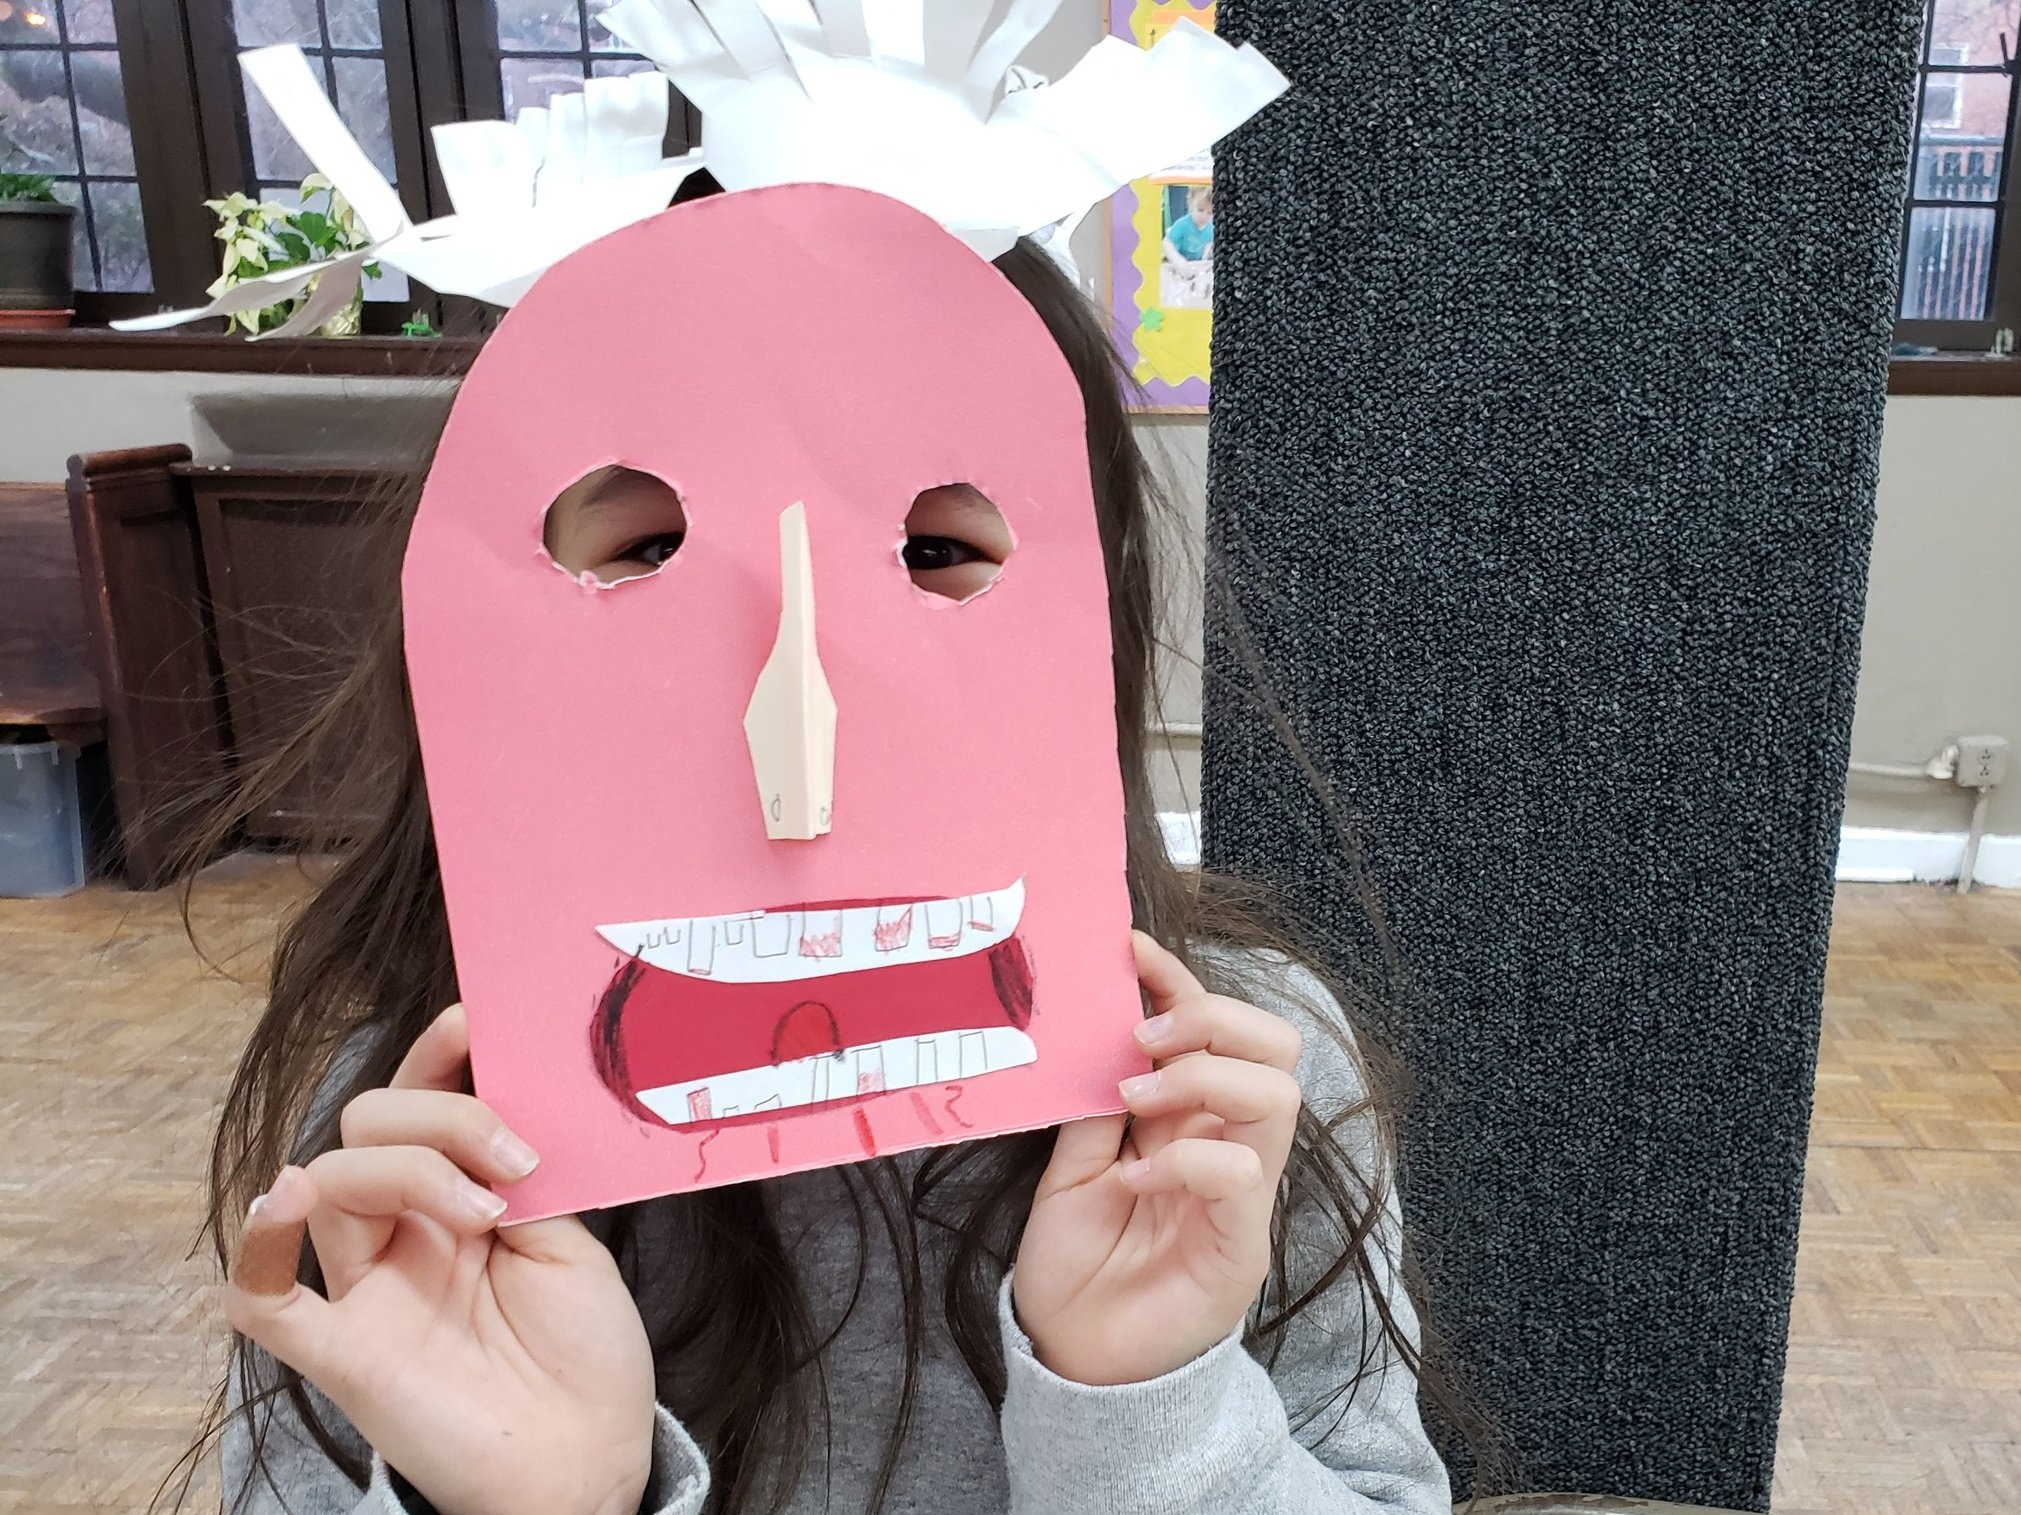 Kids made masks and shadow puppets at our craft party! January 2019.